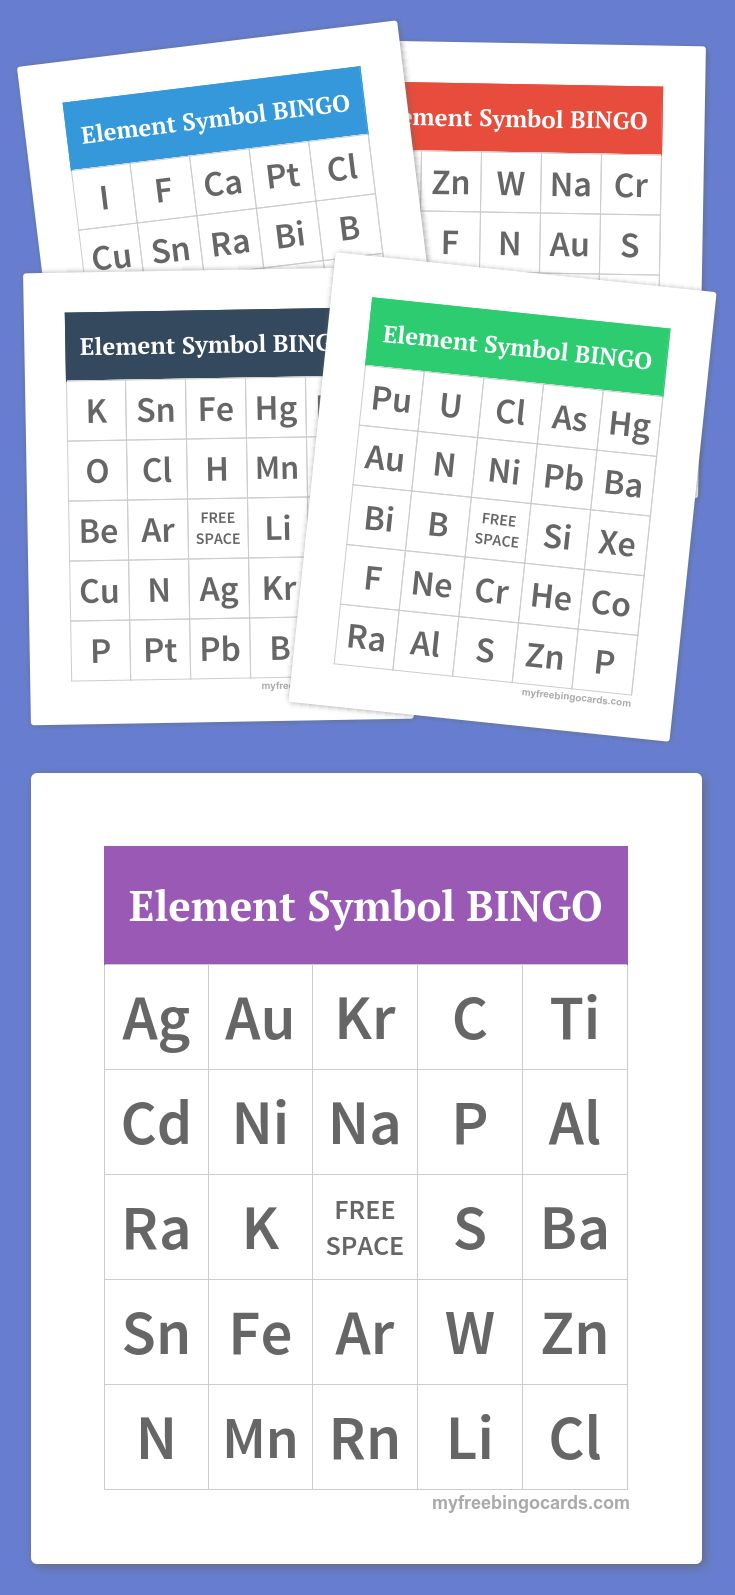 207 best the periodic table images on pinterest science 207 best the periodic table images on pinterest science chemistry physical science and chemistry gamestrikefo Image collections